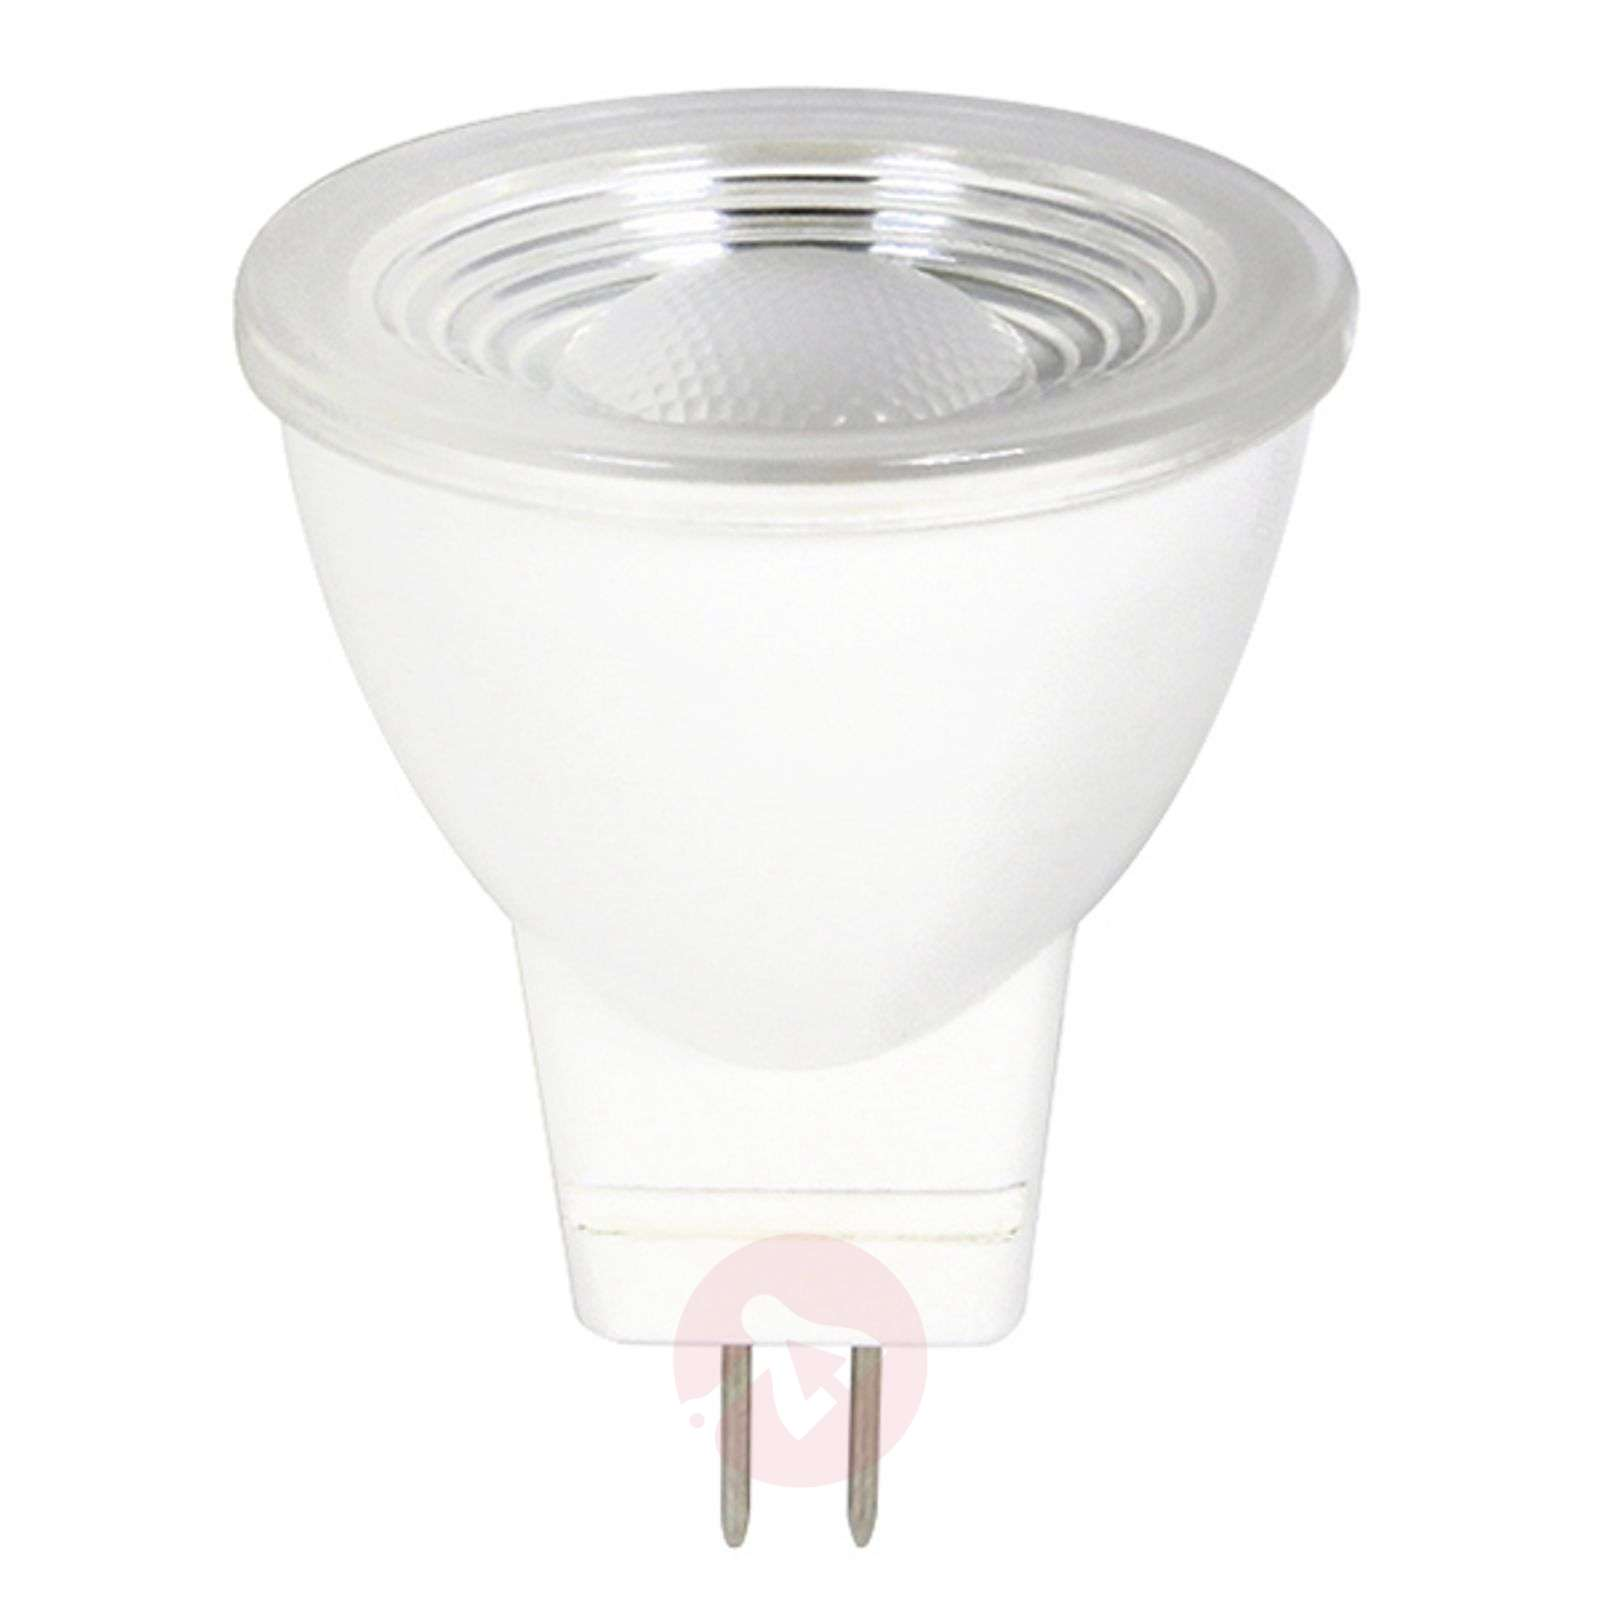 Réflecteur LED GU4 MR11 4 W 830 HELSO 60degree-2515073-01